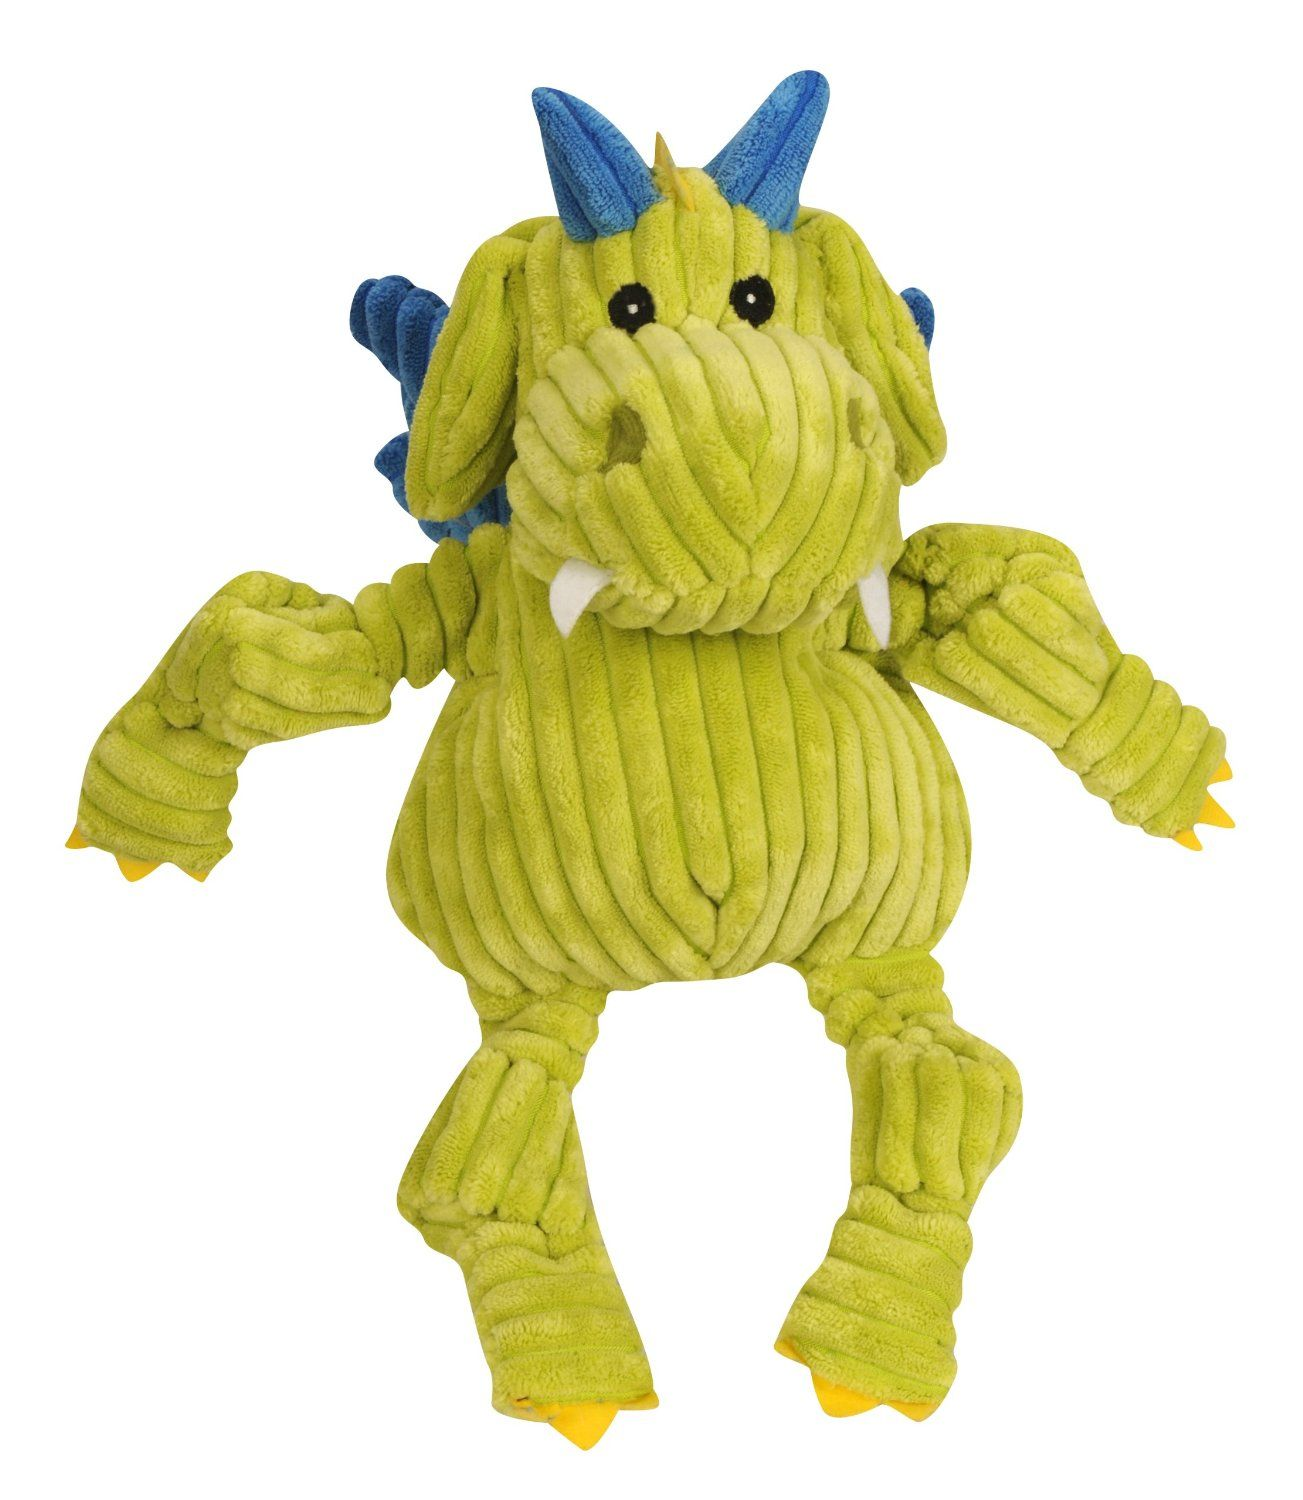 The Cutest Dragon From Gus Favorite Dog Toy Brand Dog Toys Cute Dragons Pets